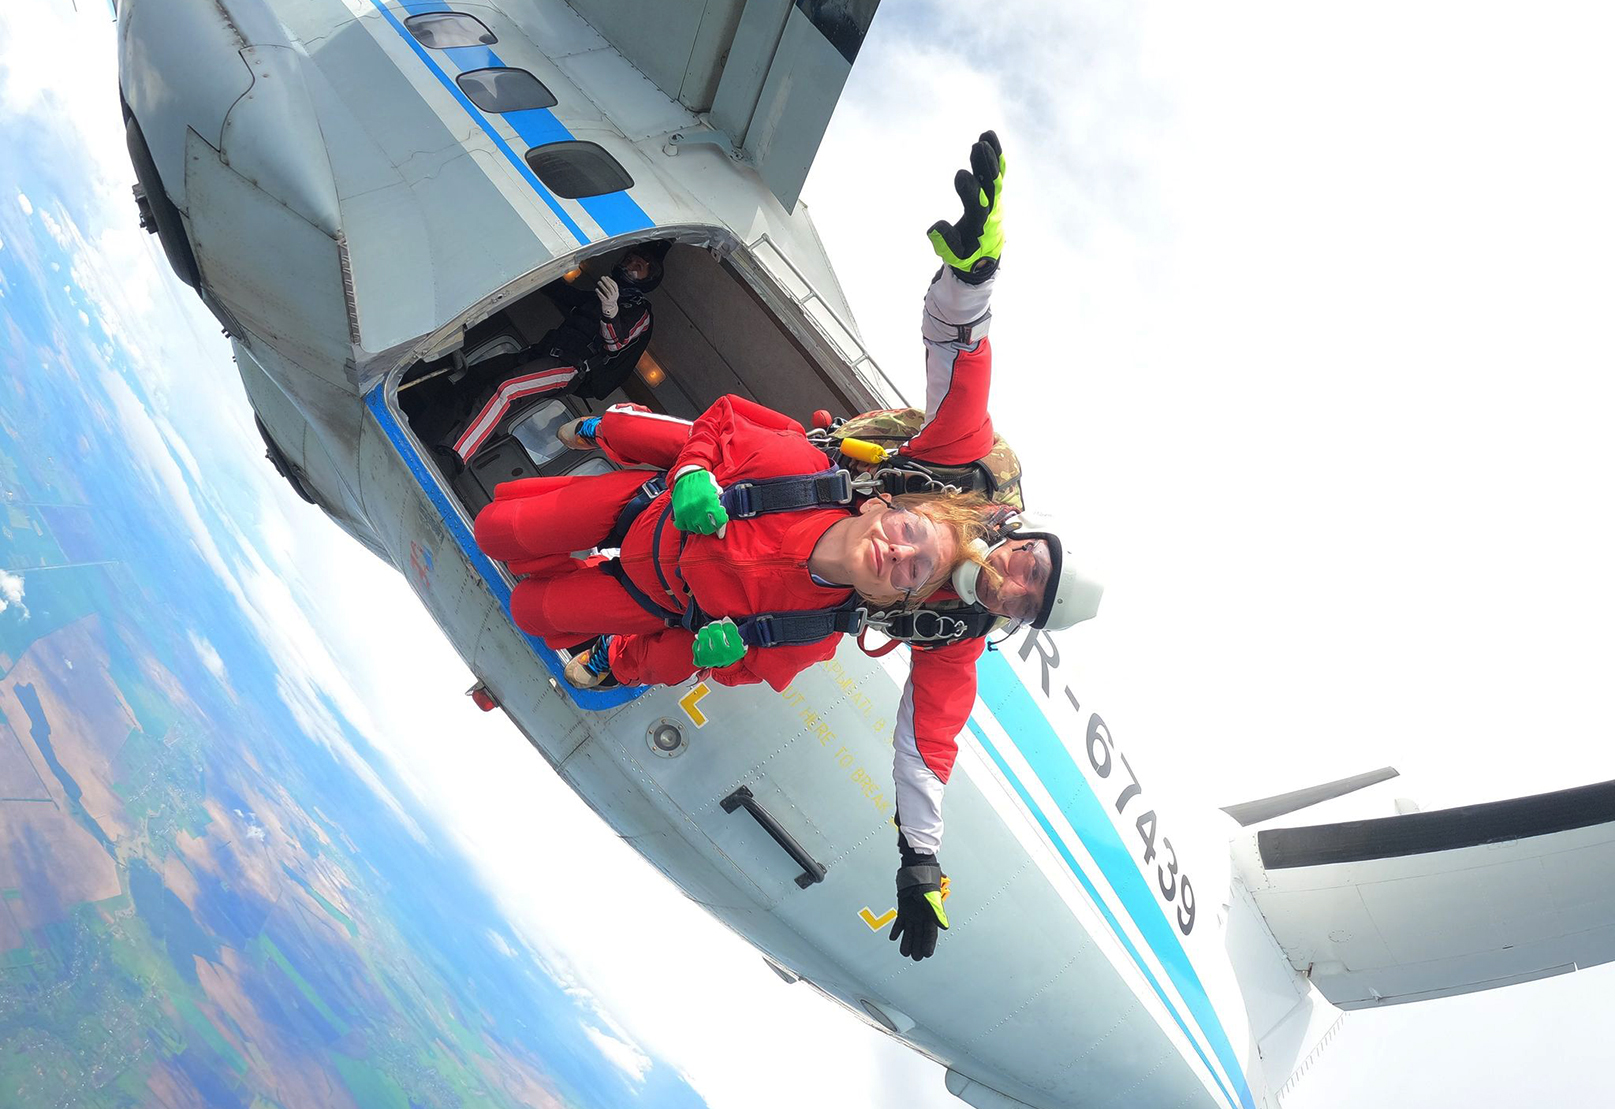 Skydiving in Ukraine on June 19, 20 and 21